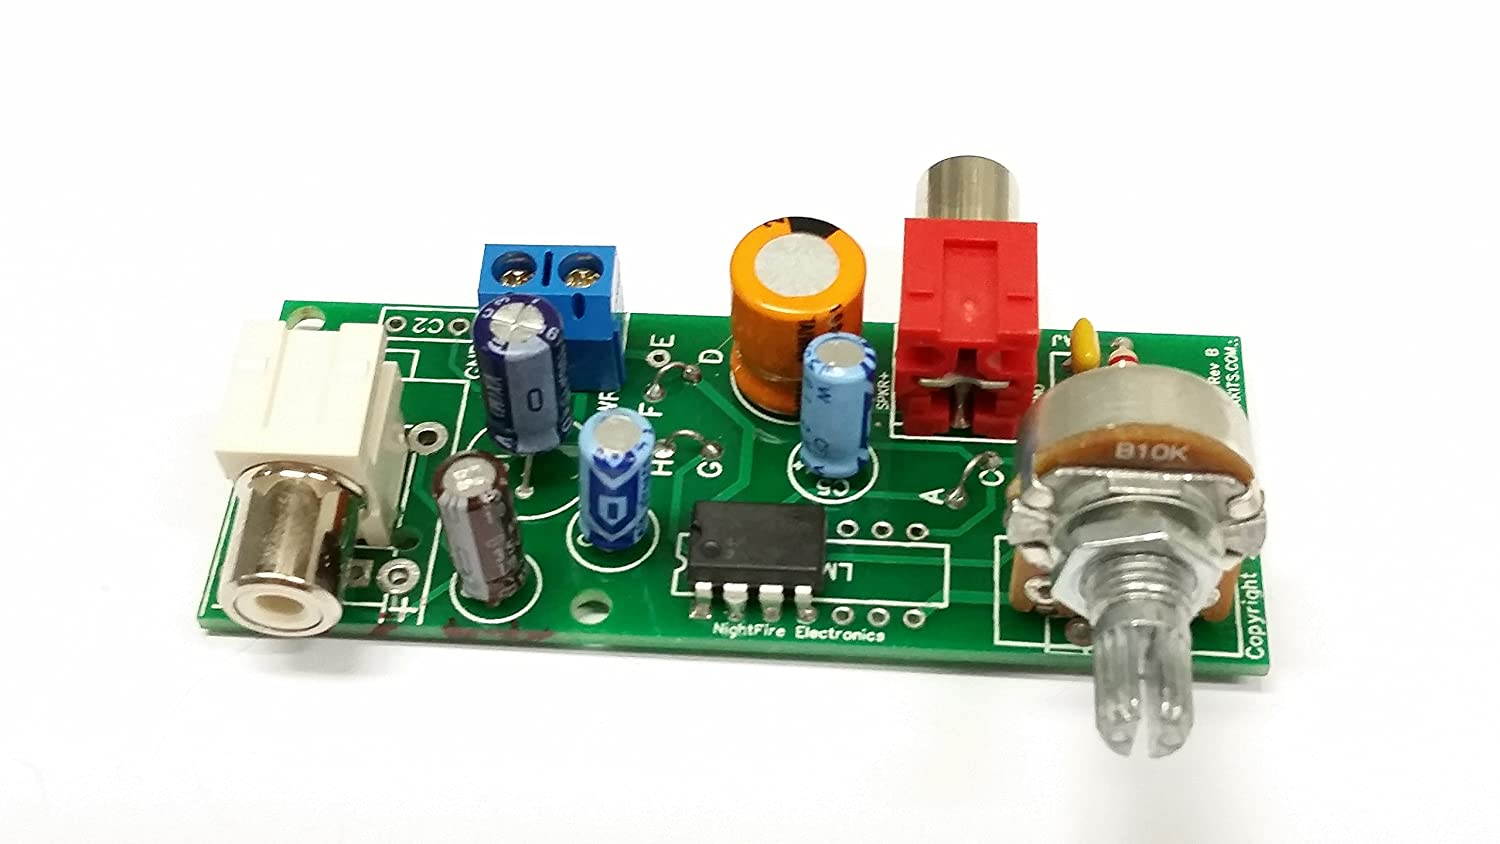 Audio Amplifier Lm380n 8 Kit 5322 Electronics Lm380 Power Circuit